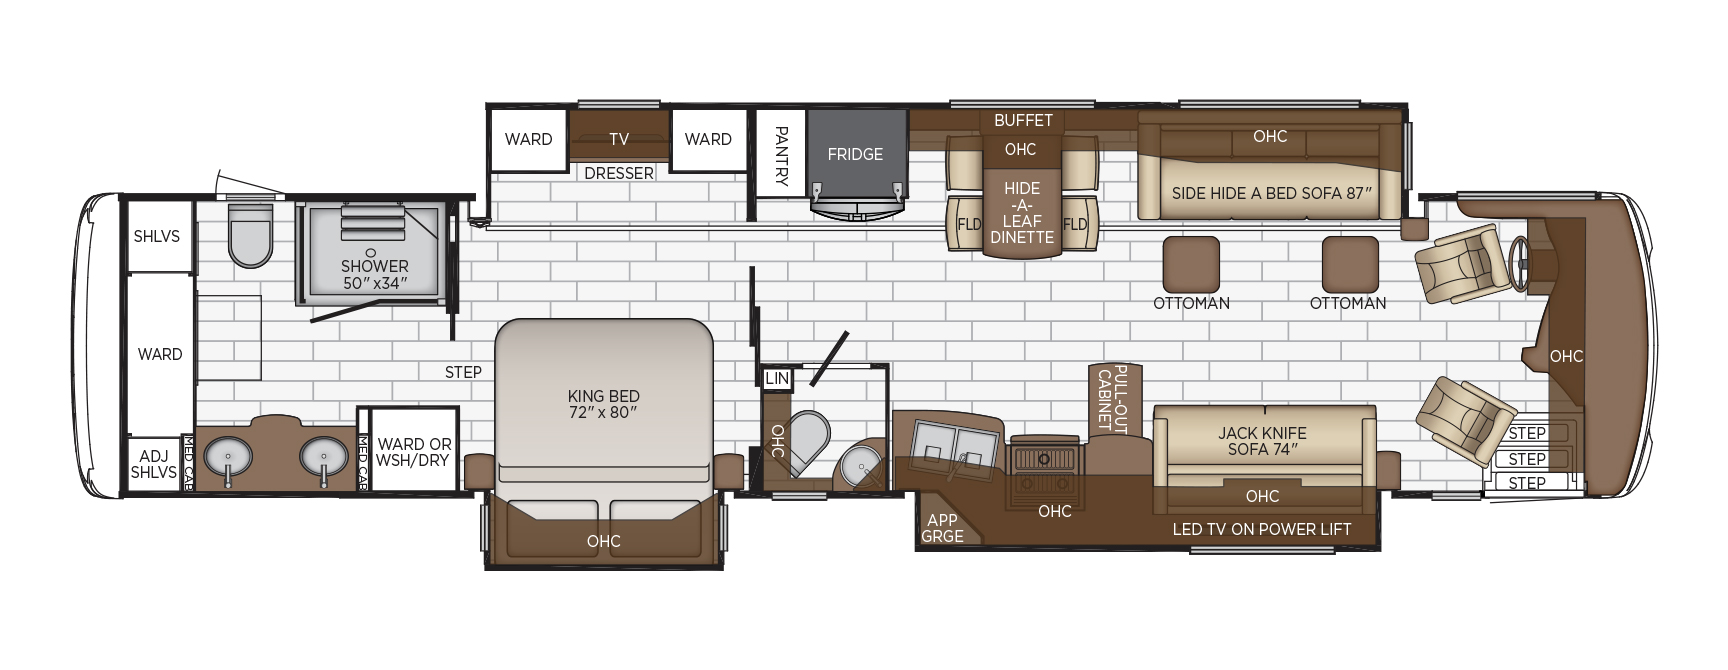 2020 Newmar Dutch Star 4369 Floor Plan